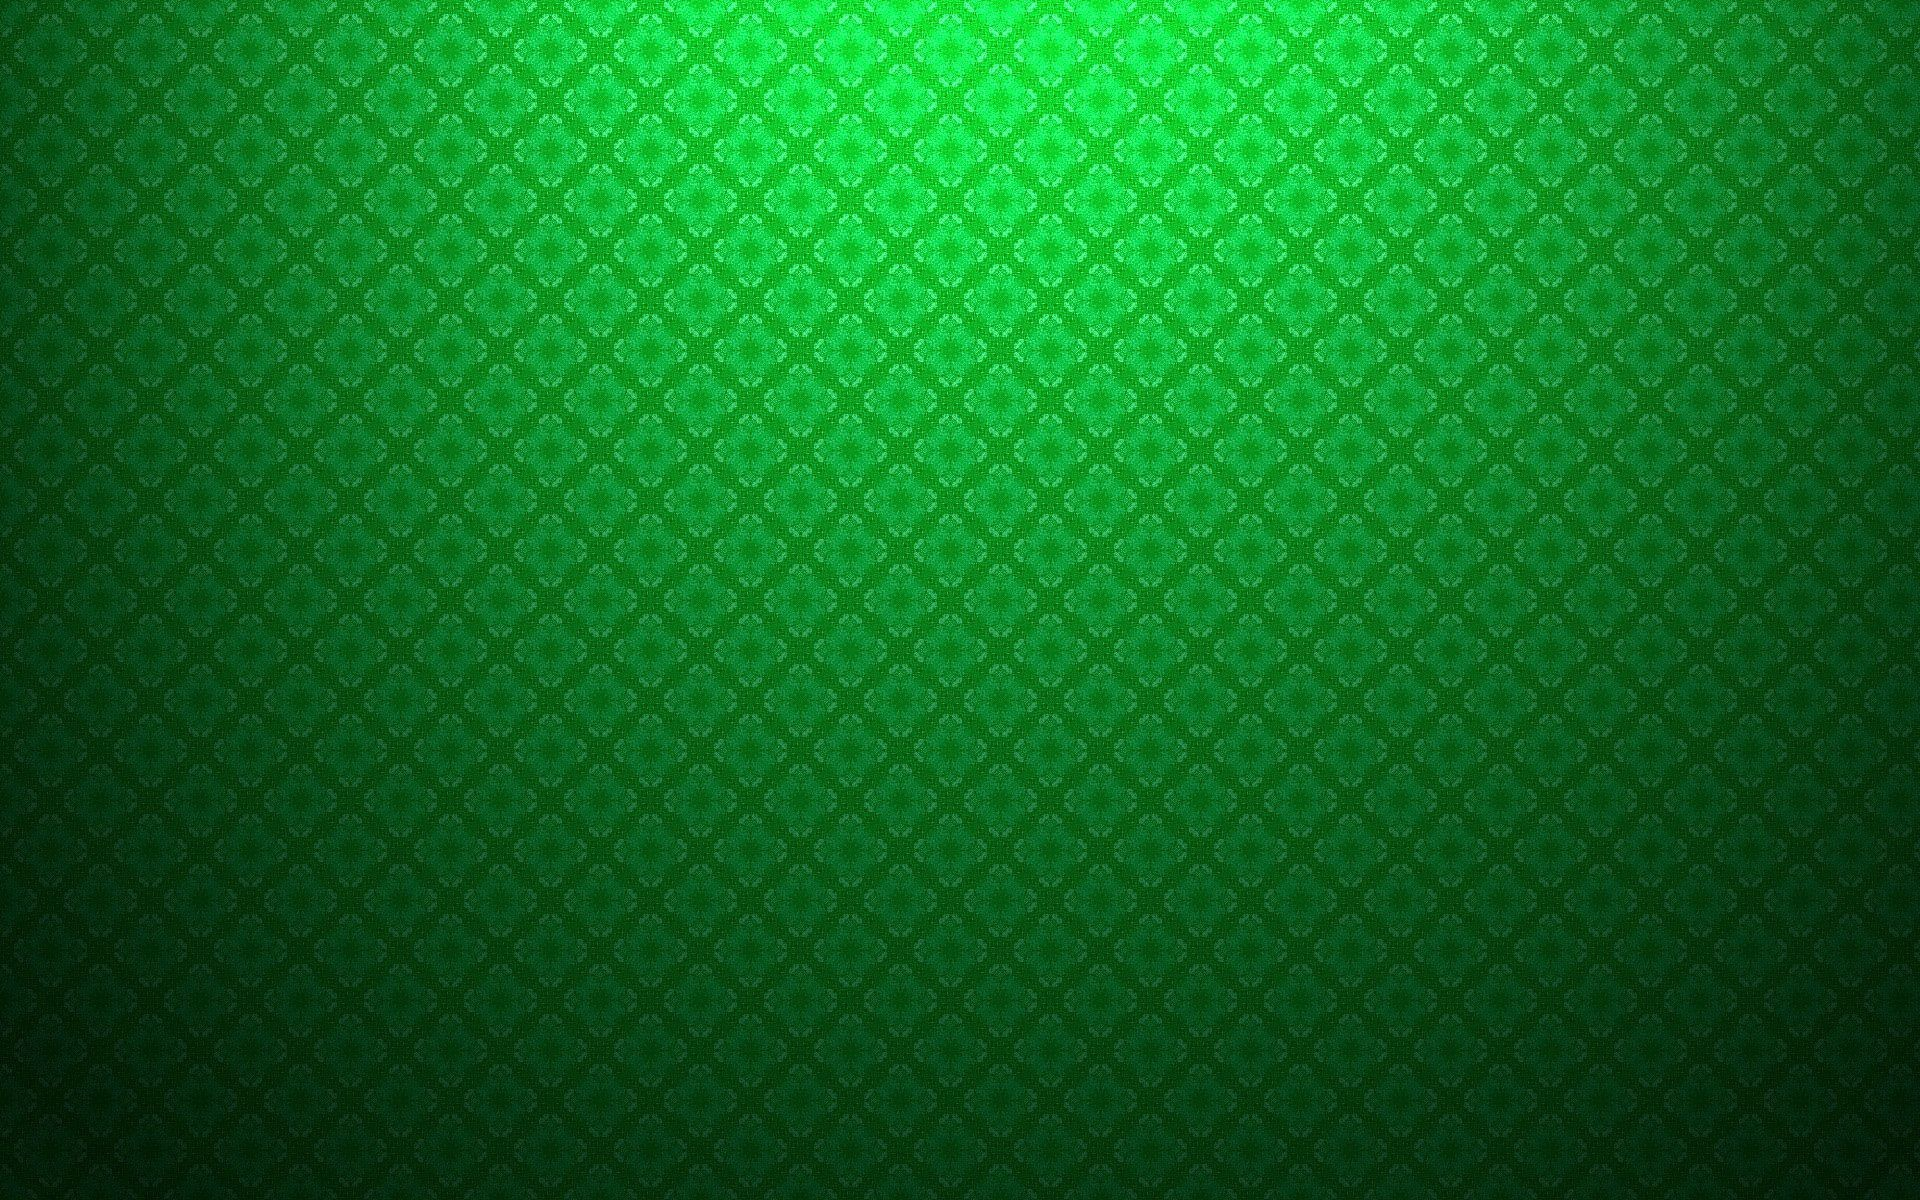 1920x1200 Green Background